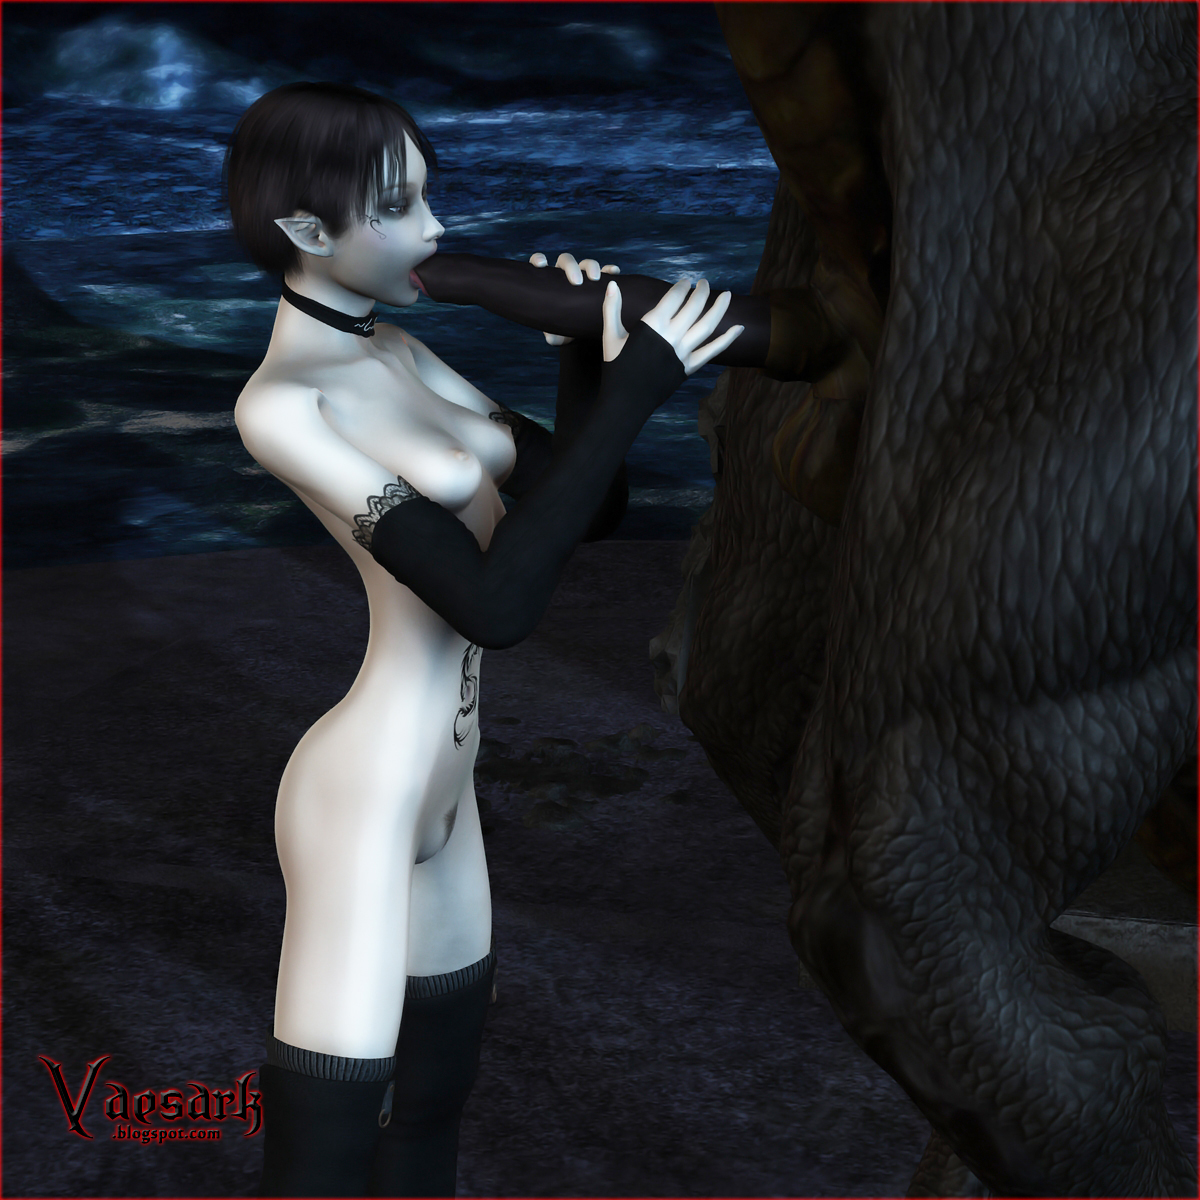 Erotic lit vixen demon naked thumbs